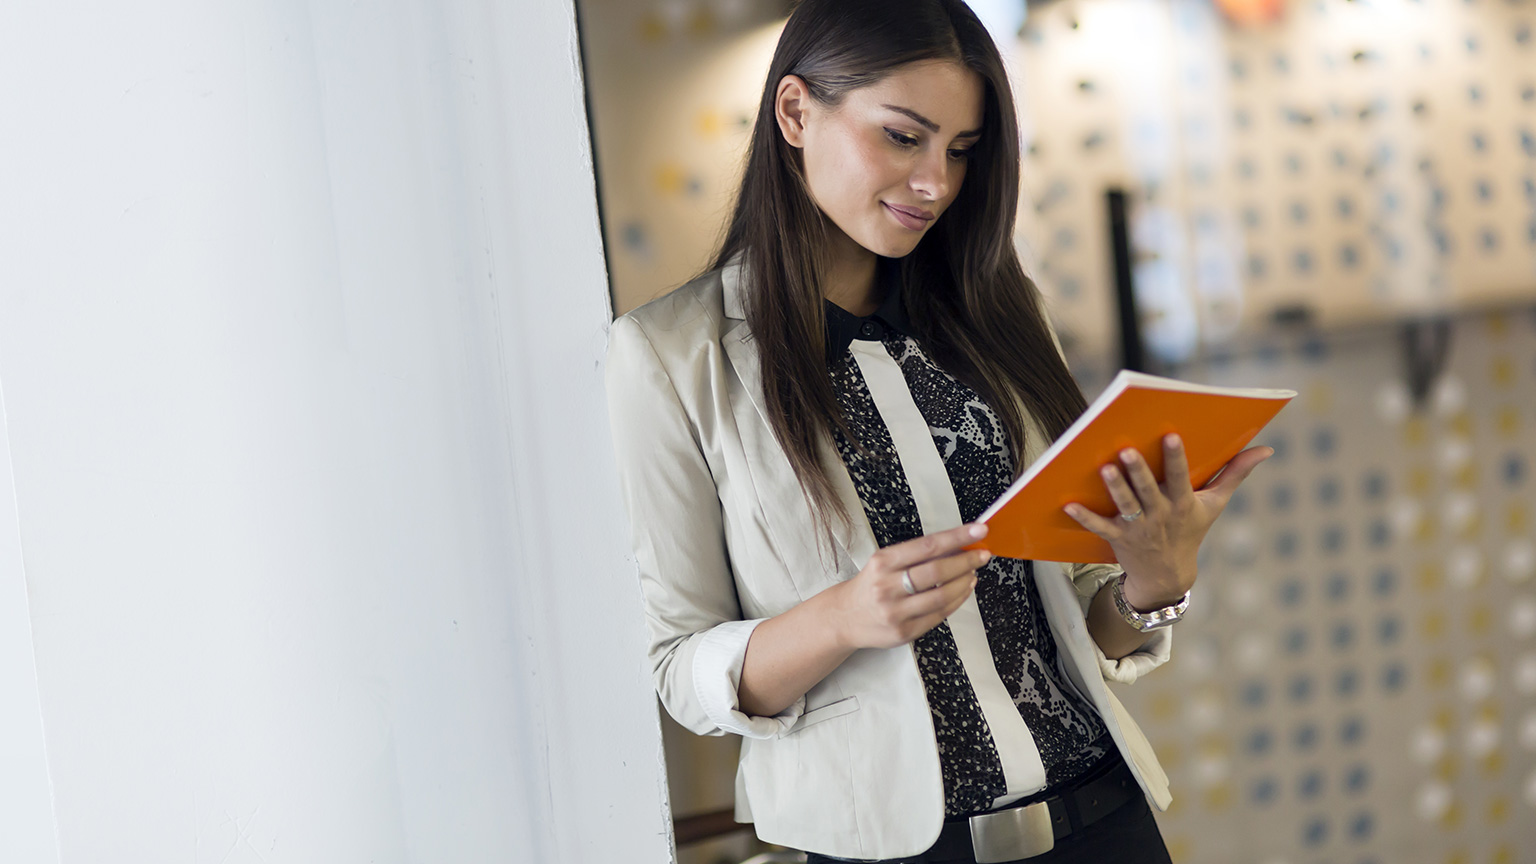 10 key points to consider when transforming your customer experience